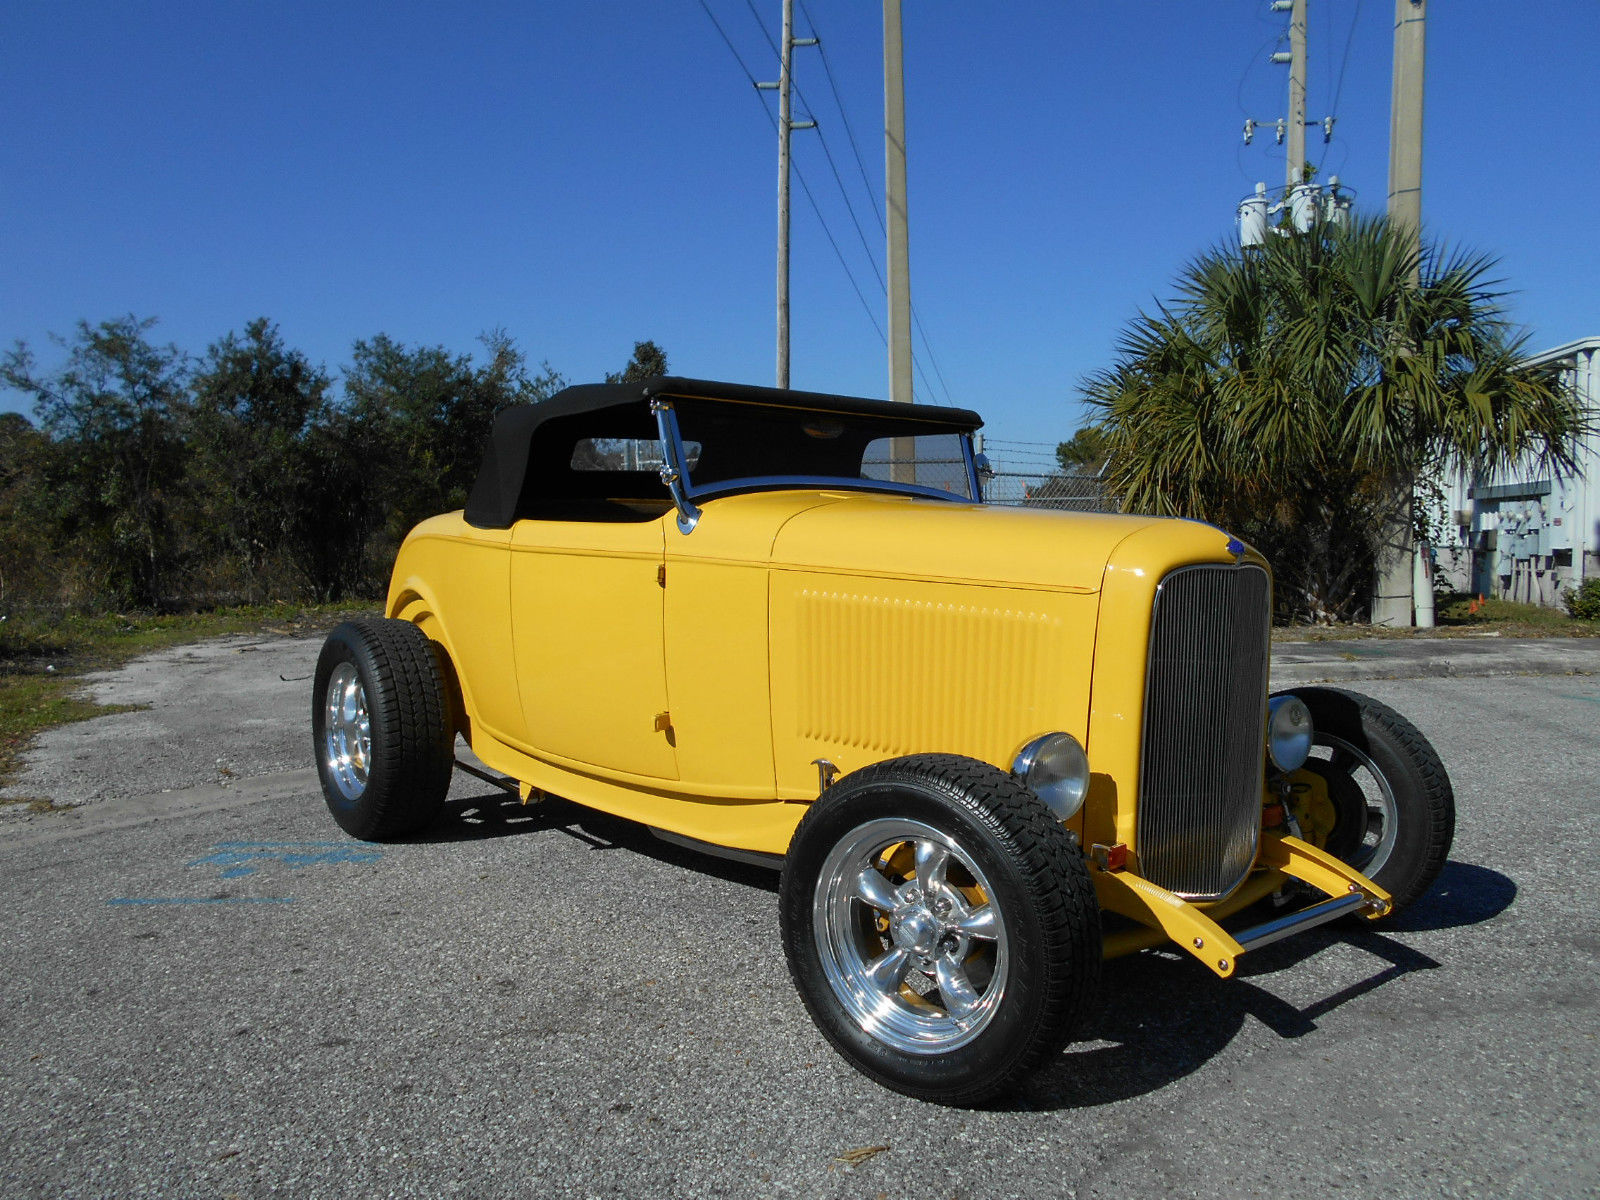 1932 ford roadster highboy street rod 350 auto full steel. Black Bedroom Furniture Sets. Home Design Ideas